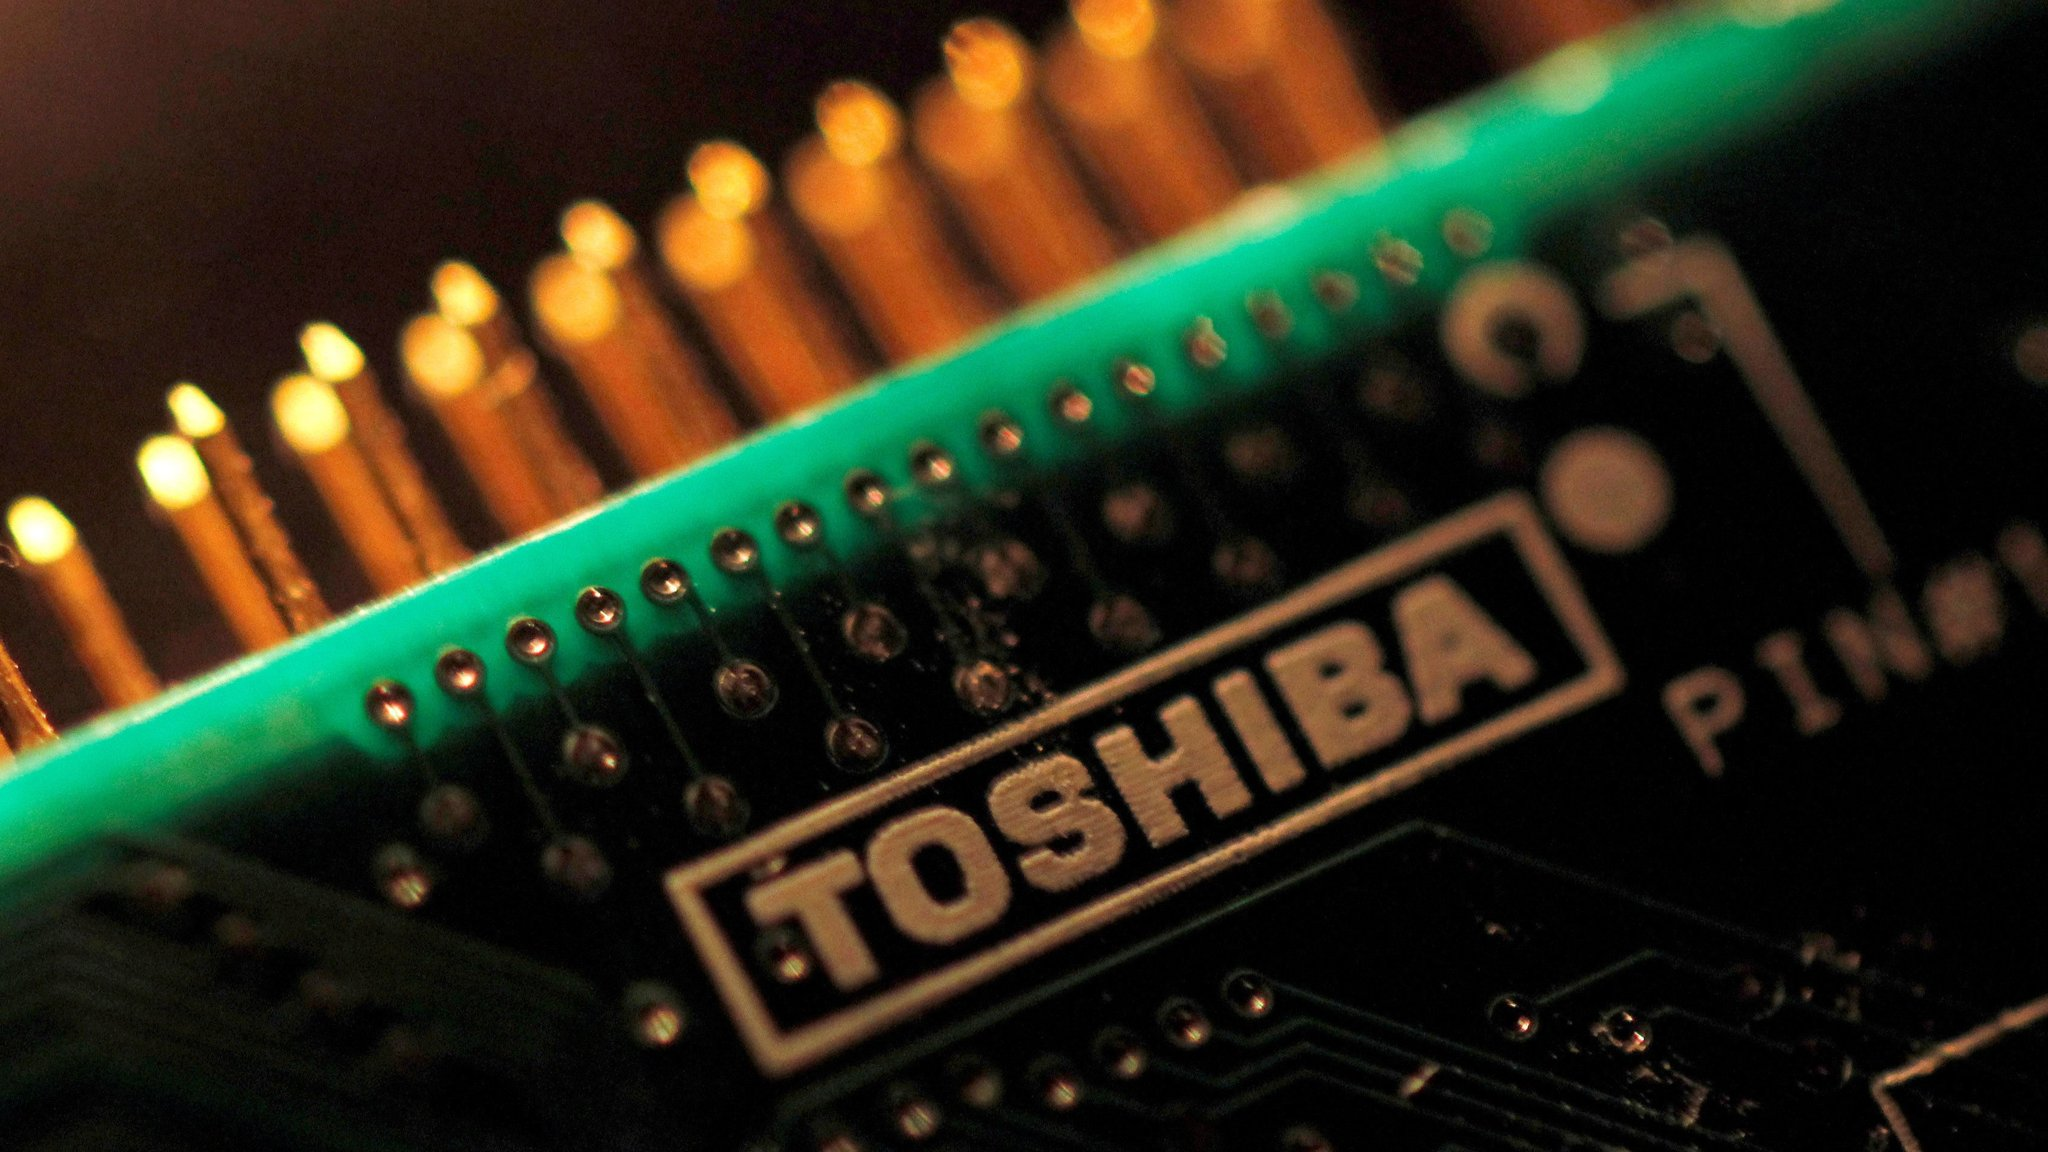 Toshiba considers IPO of $18bn memory chip business